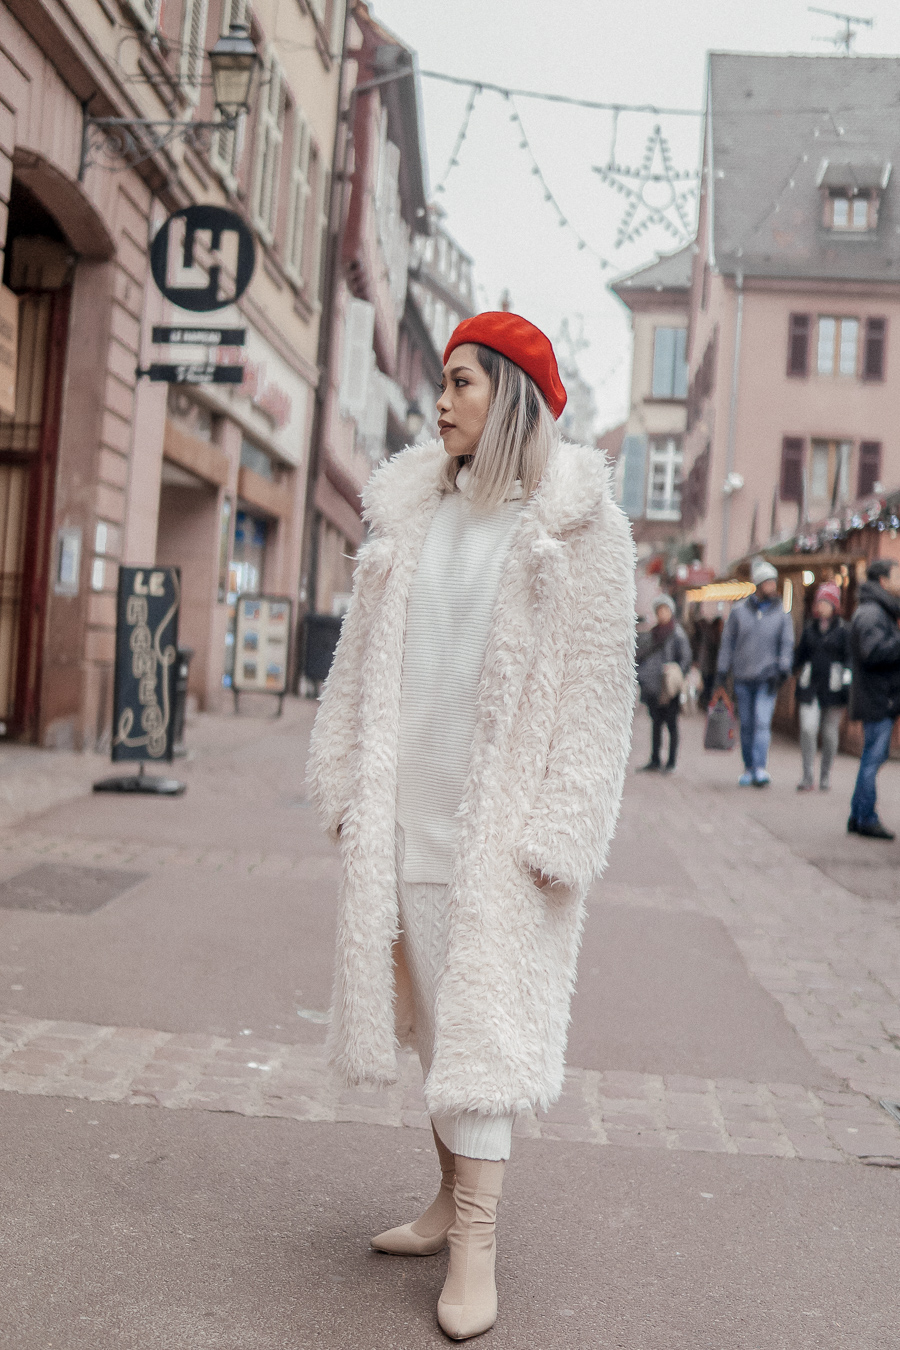 White Outfit for Winter